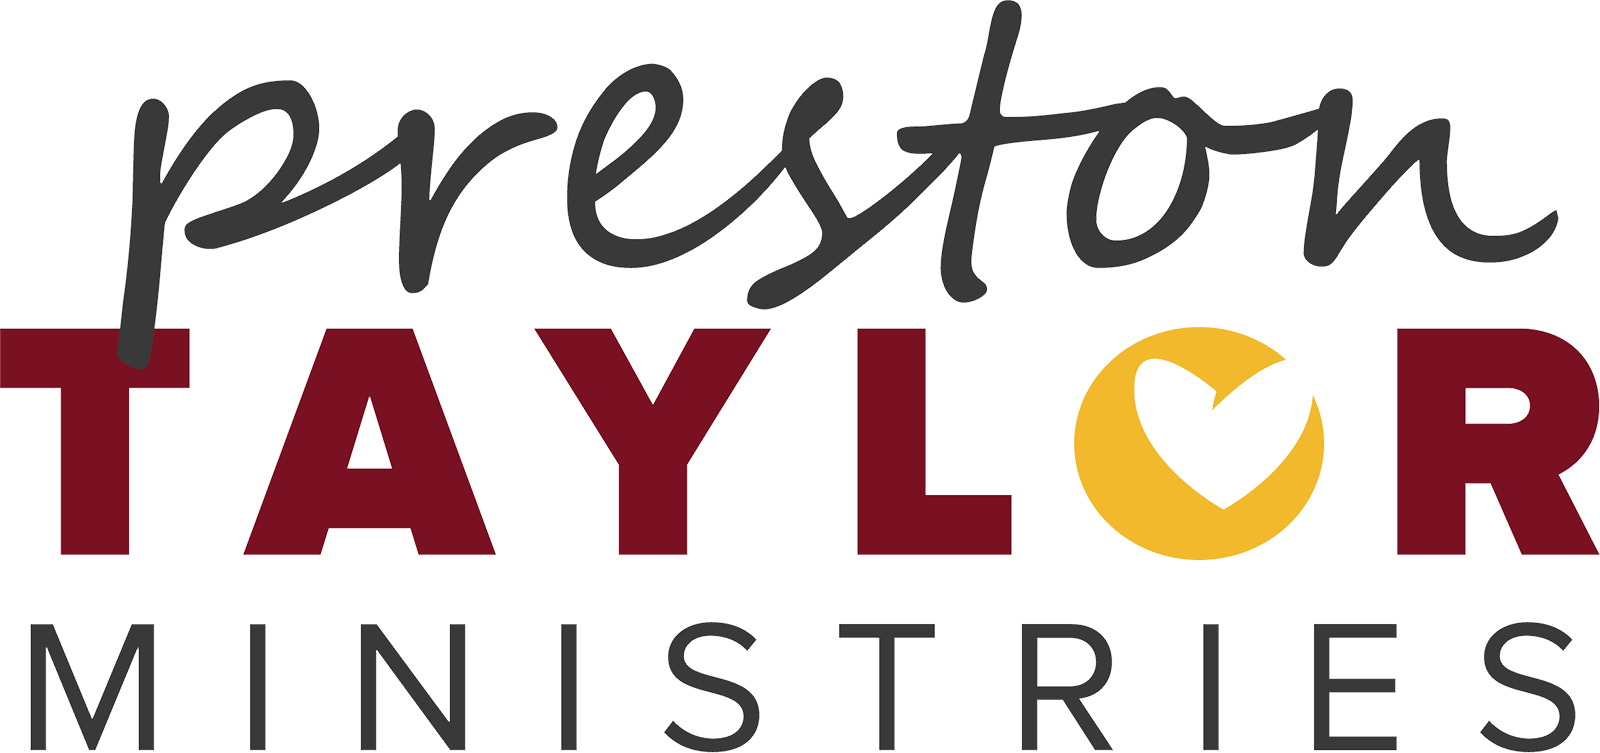 Preston_Taylor_Ministries_logo_final-01_(2)(2)_(1)